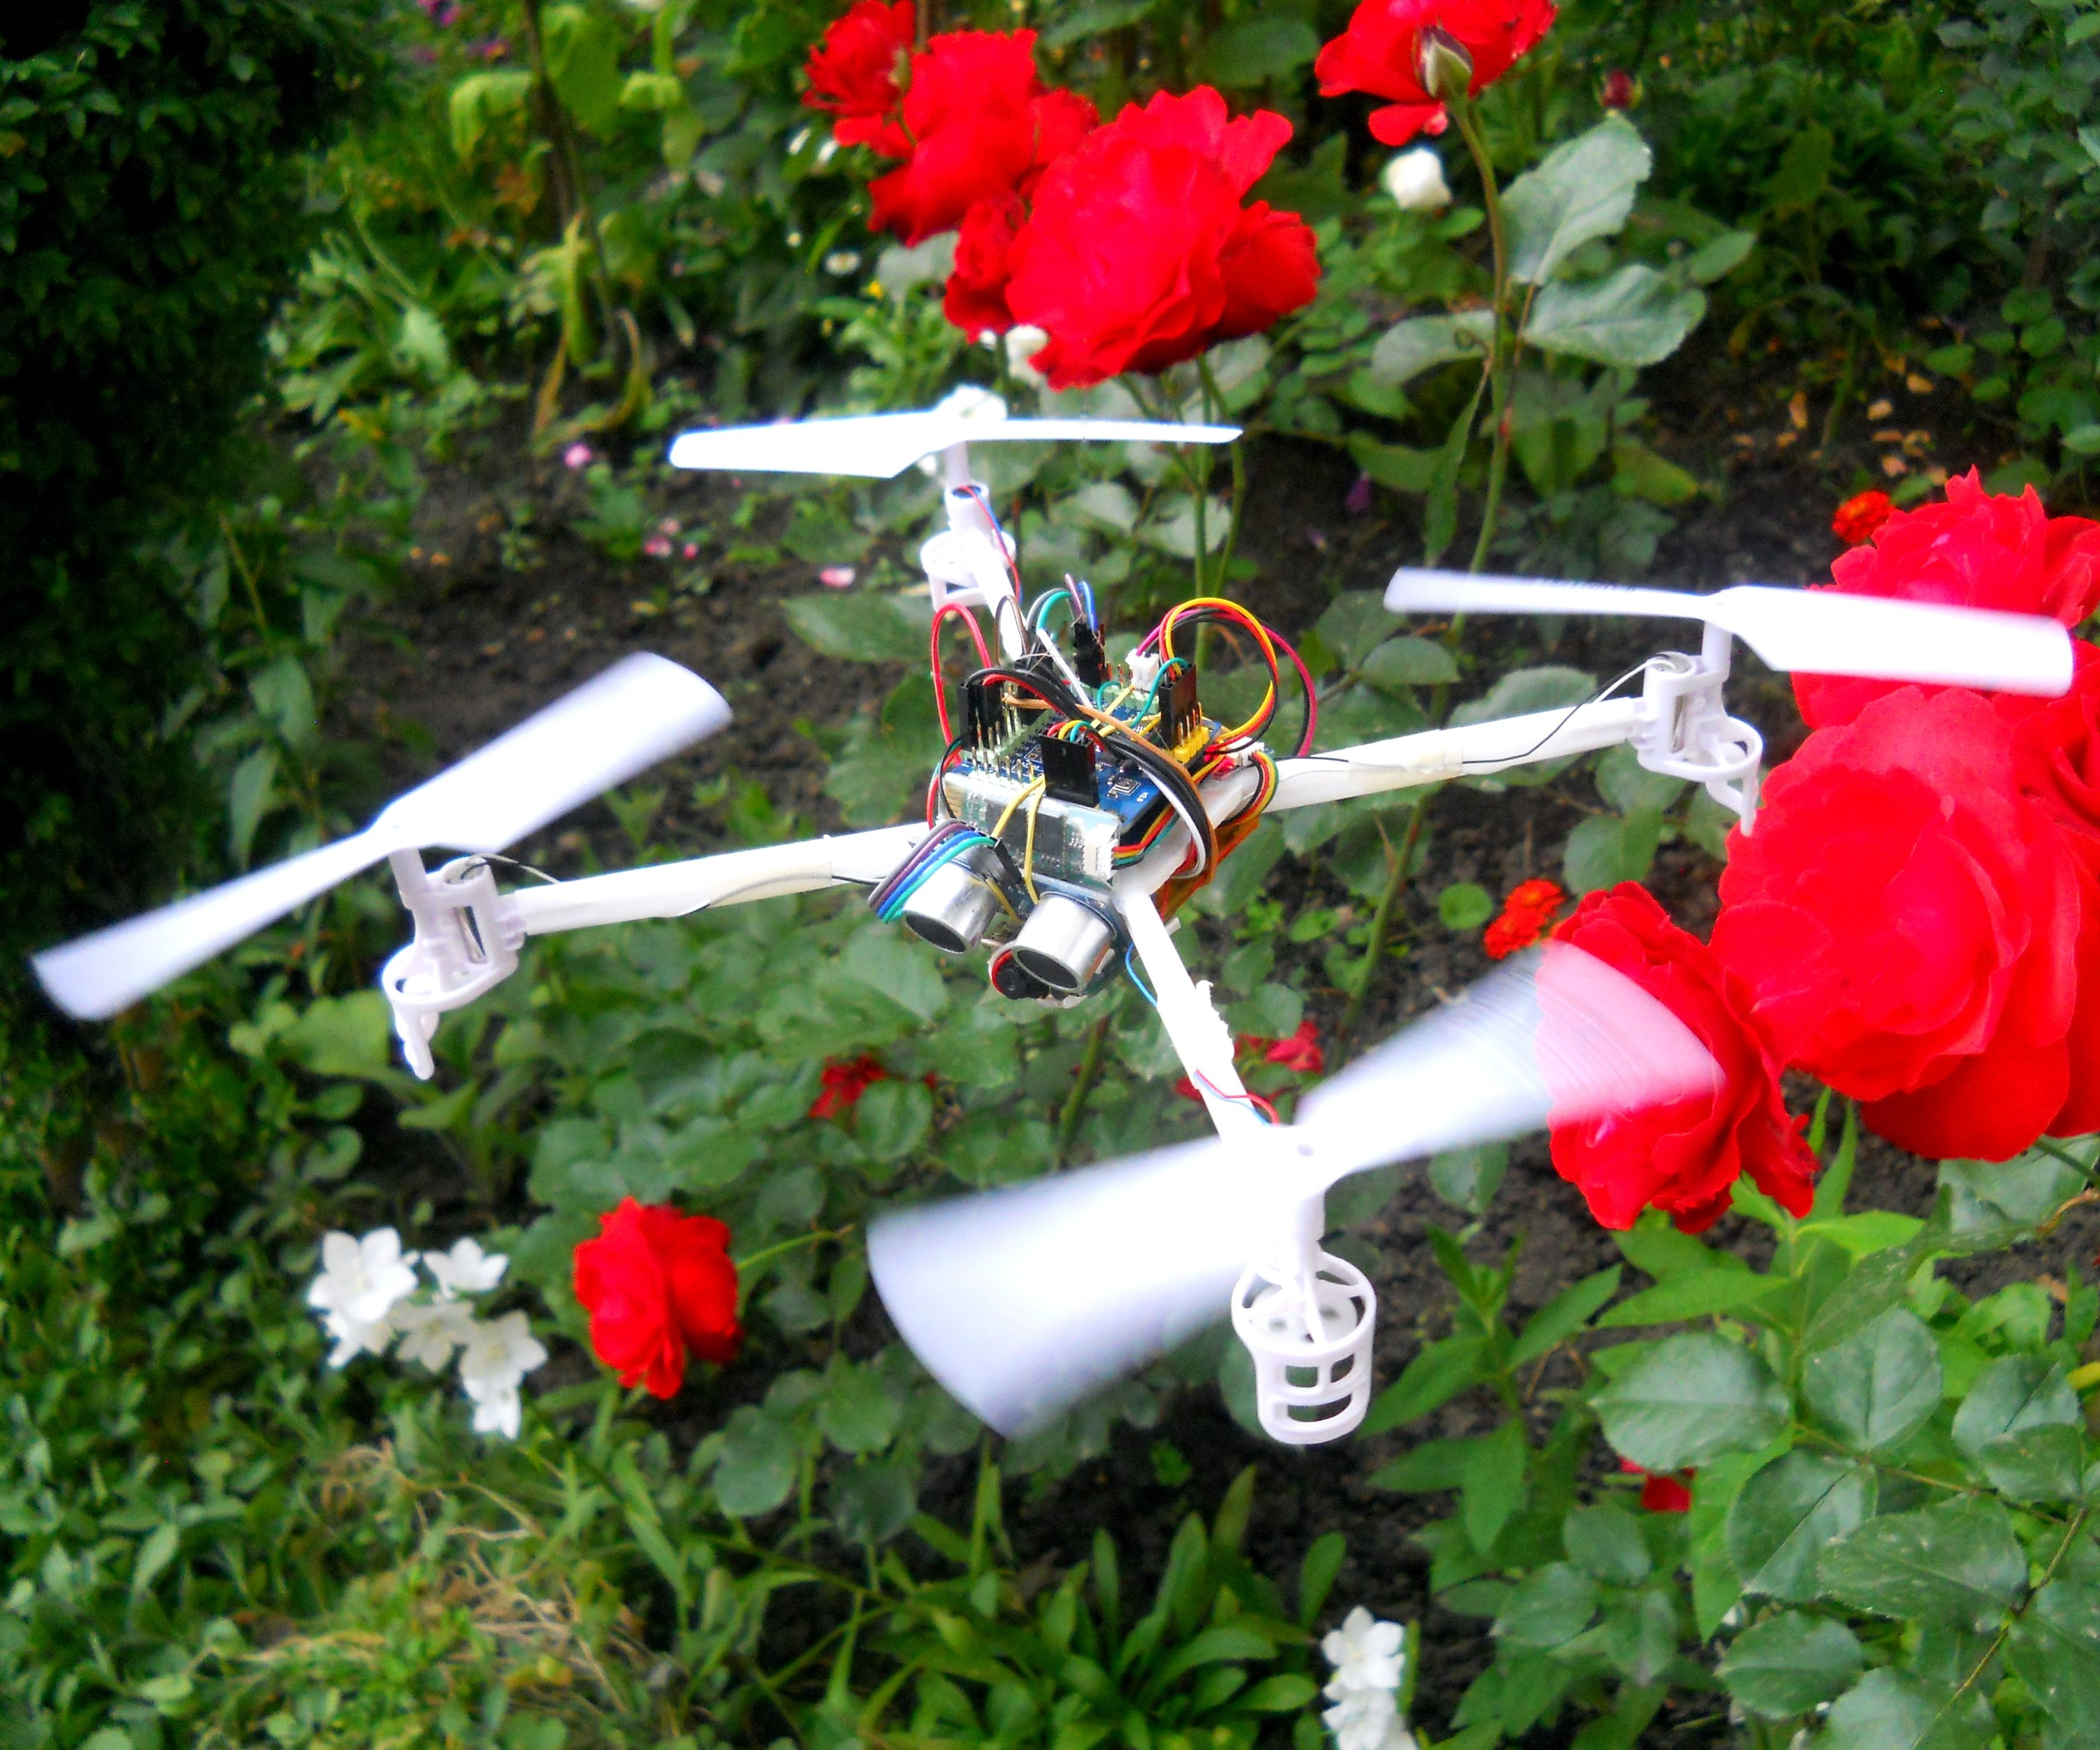 DIY Follow Me Drone With Camera (Arduino Based)